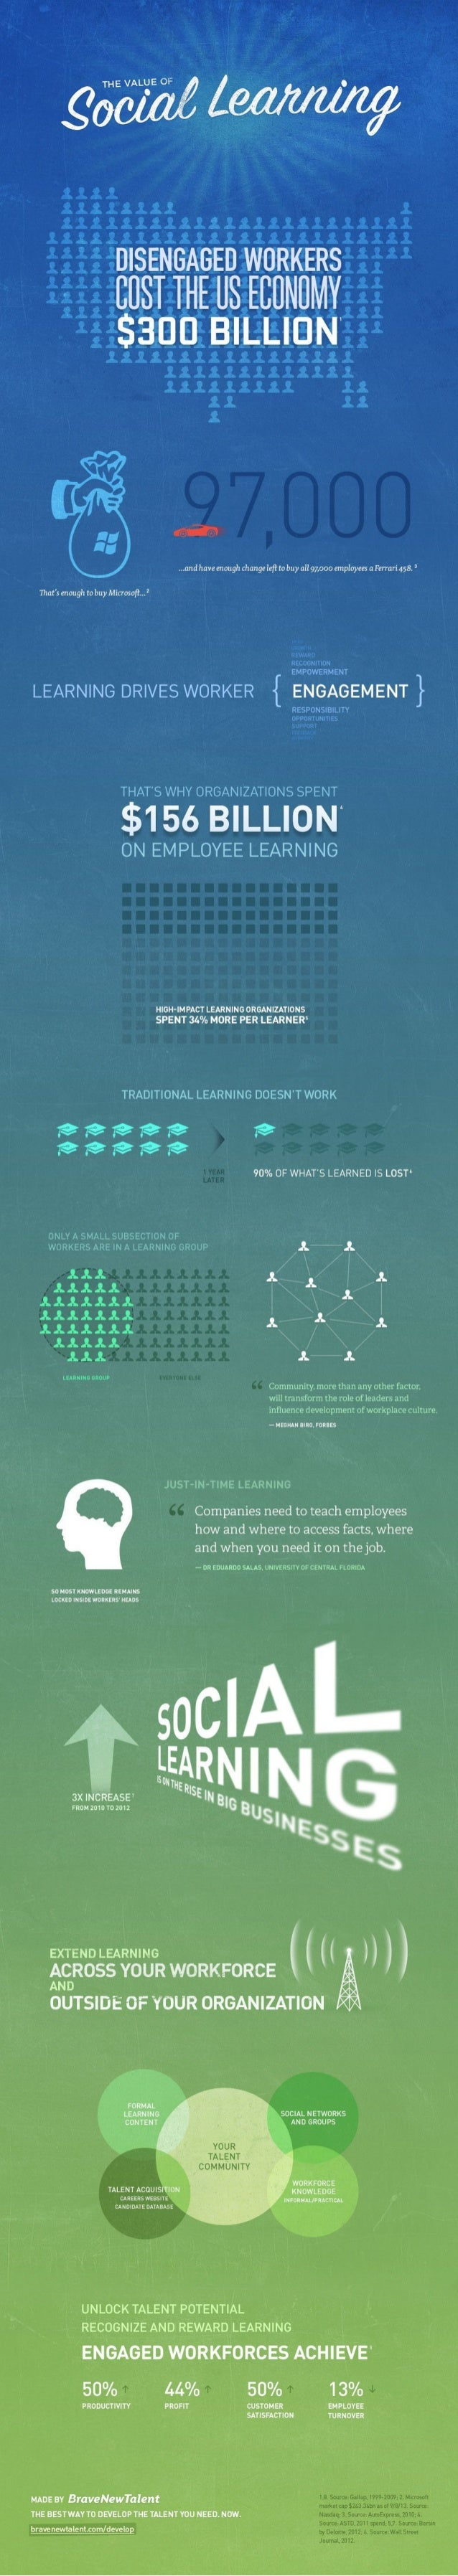 Social Learning Infographic